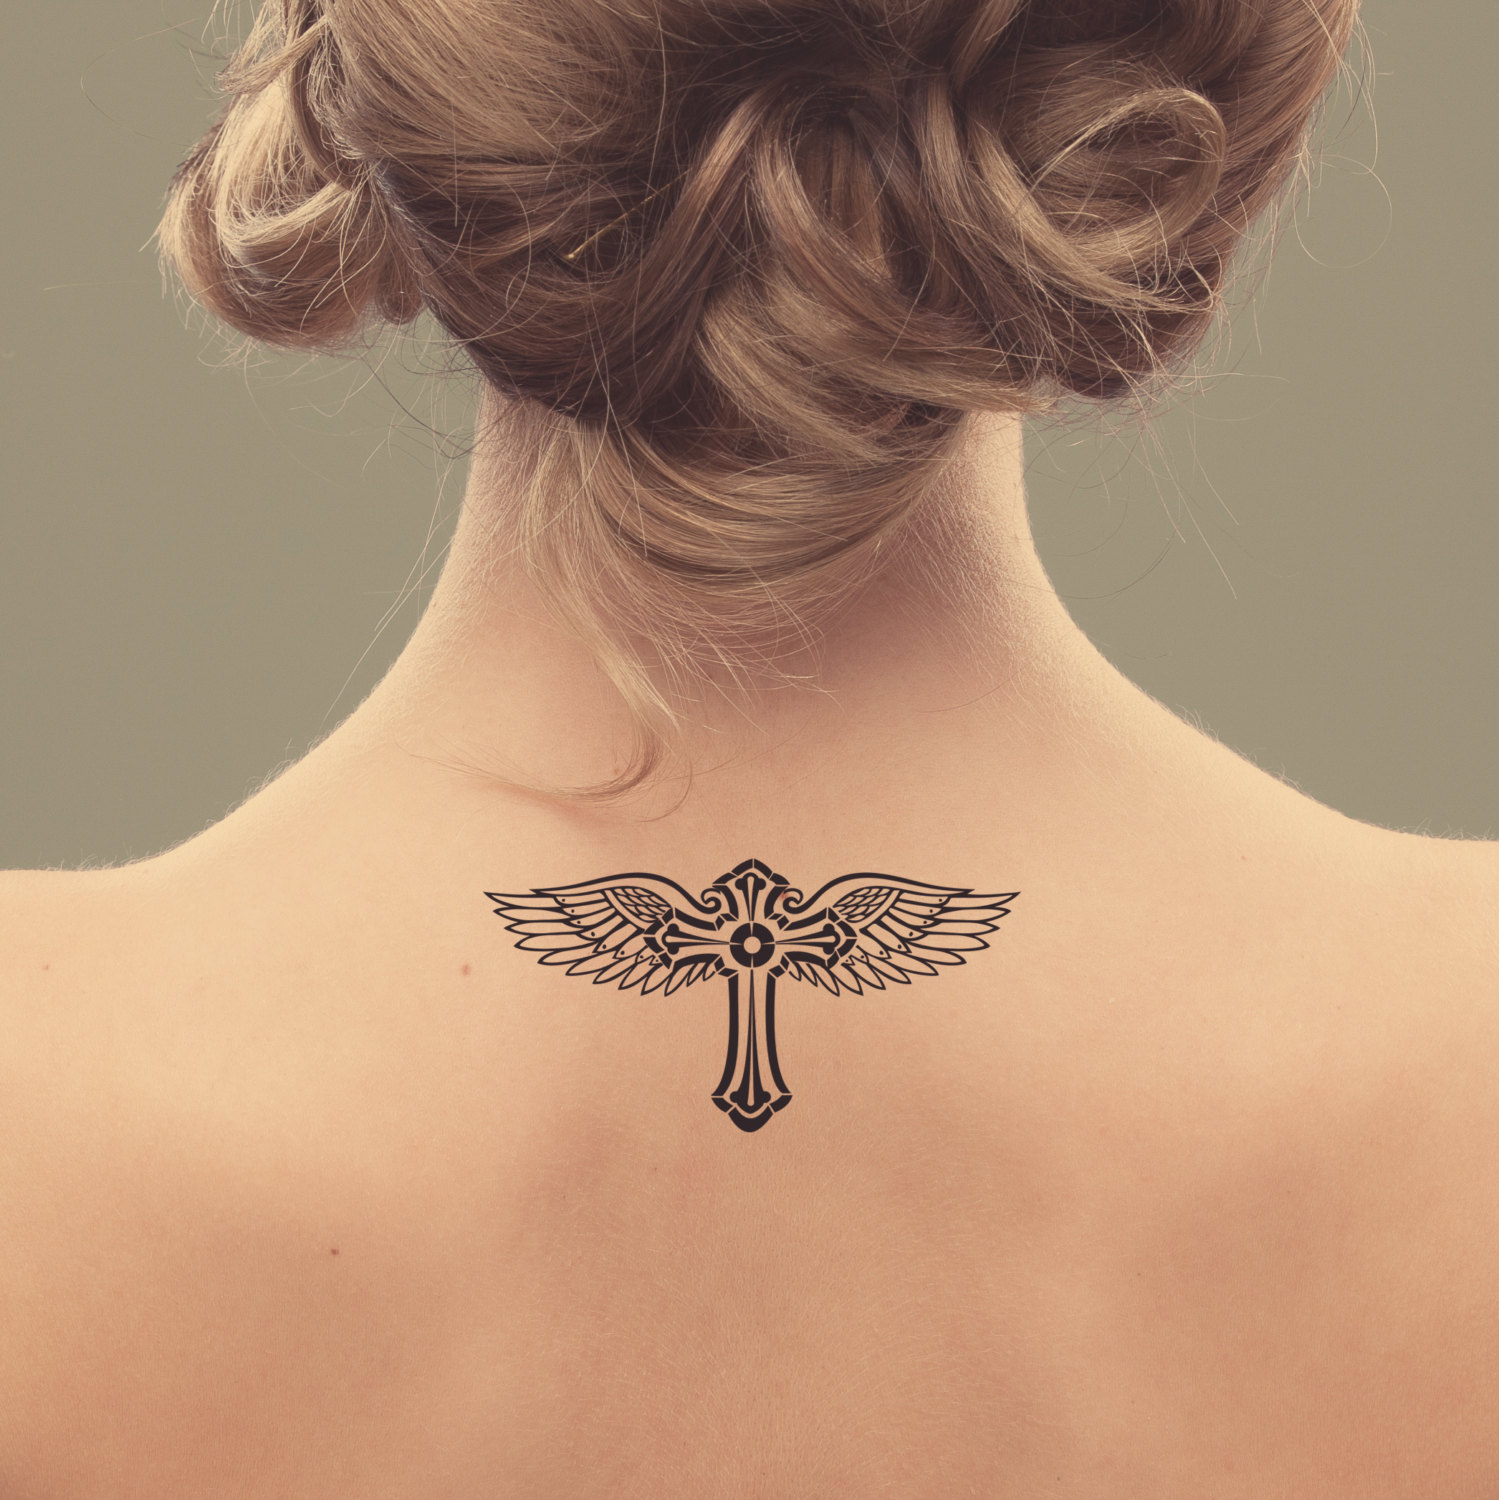 Cross And Wings Temporary Tattoo Tattoo Design Love Tattoo